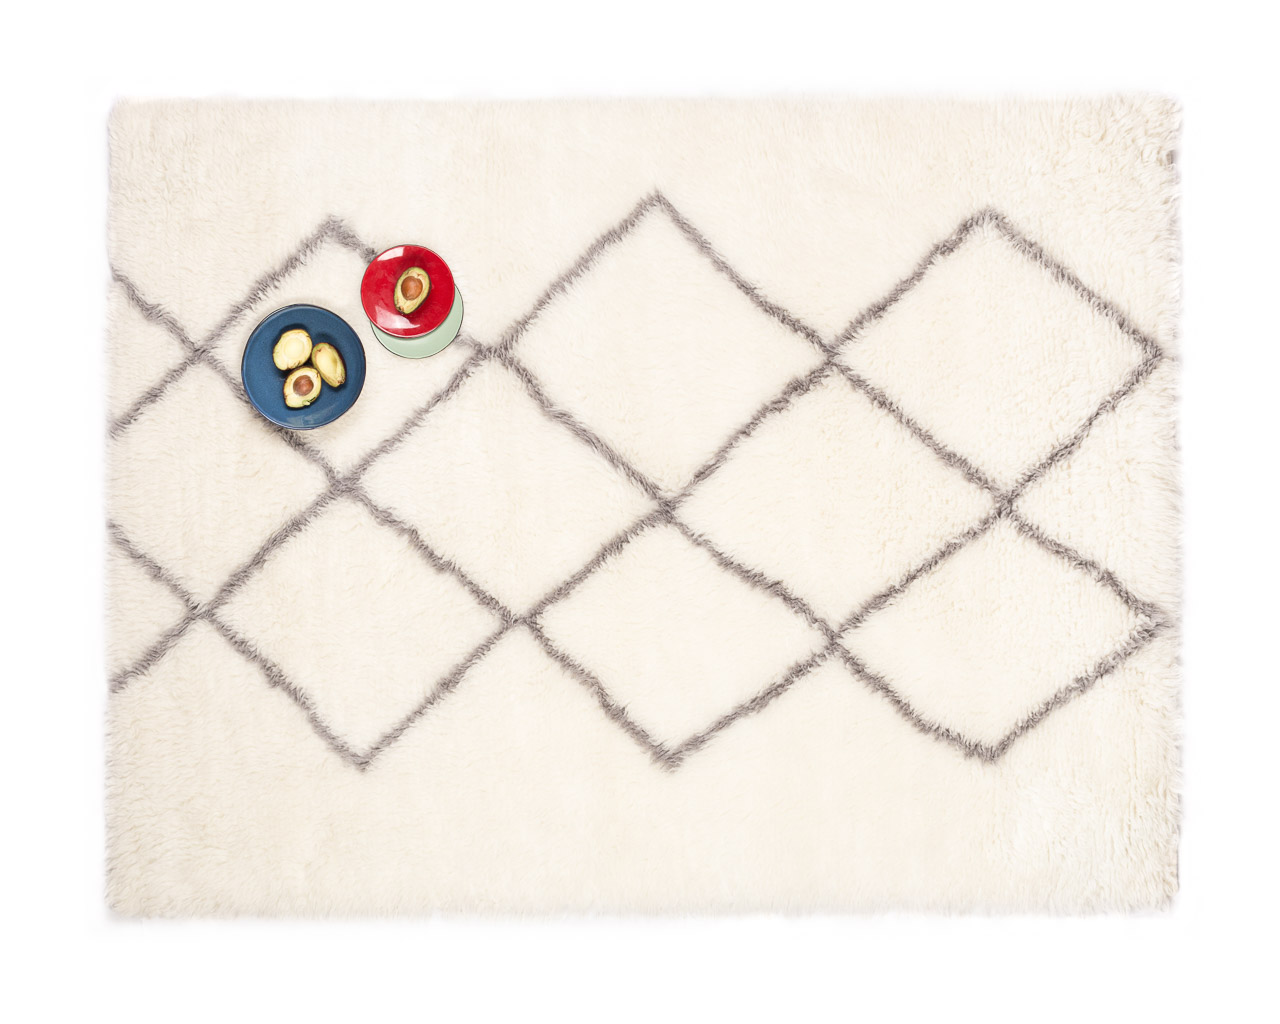 rectangular white rug with grey rhombus for home decor